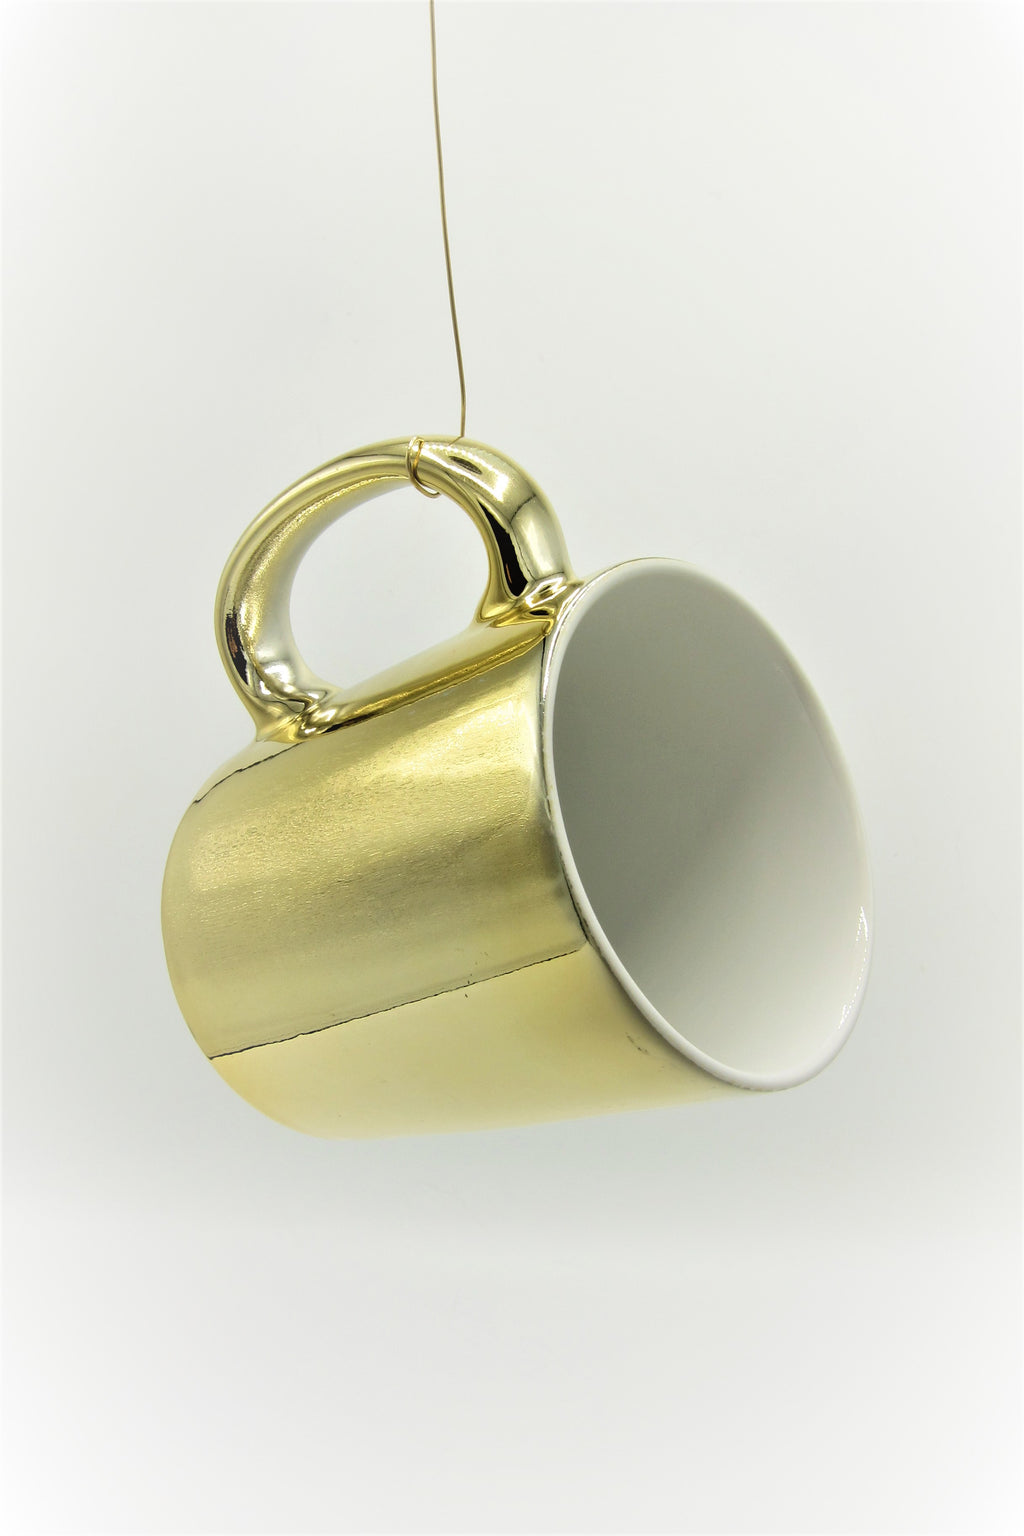 Vintage 22K Gold-Plated Ceramic Mug